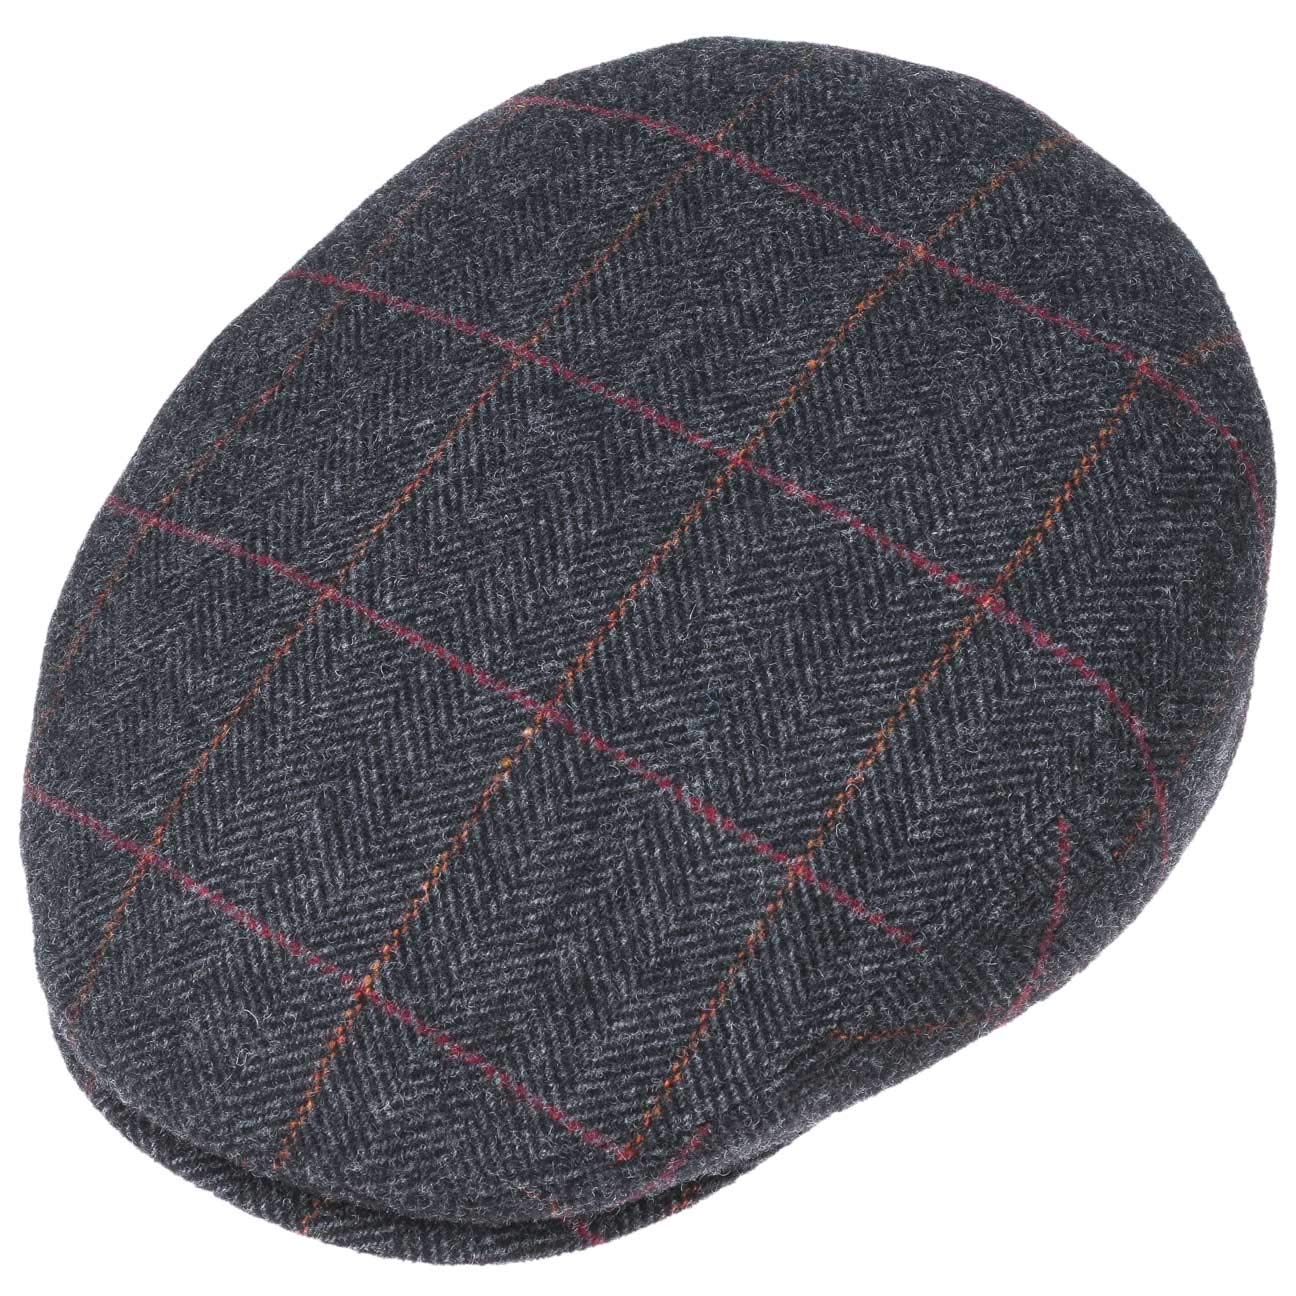 f8c6cdd75c678 Amazon.com  Stetson Kent Wool Ivy Cap with Earflaps Men  Clothing